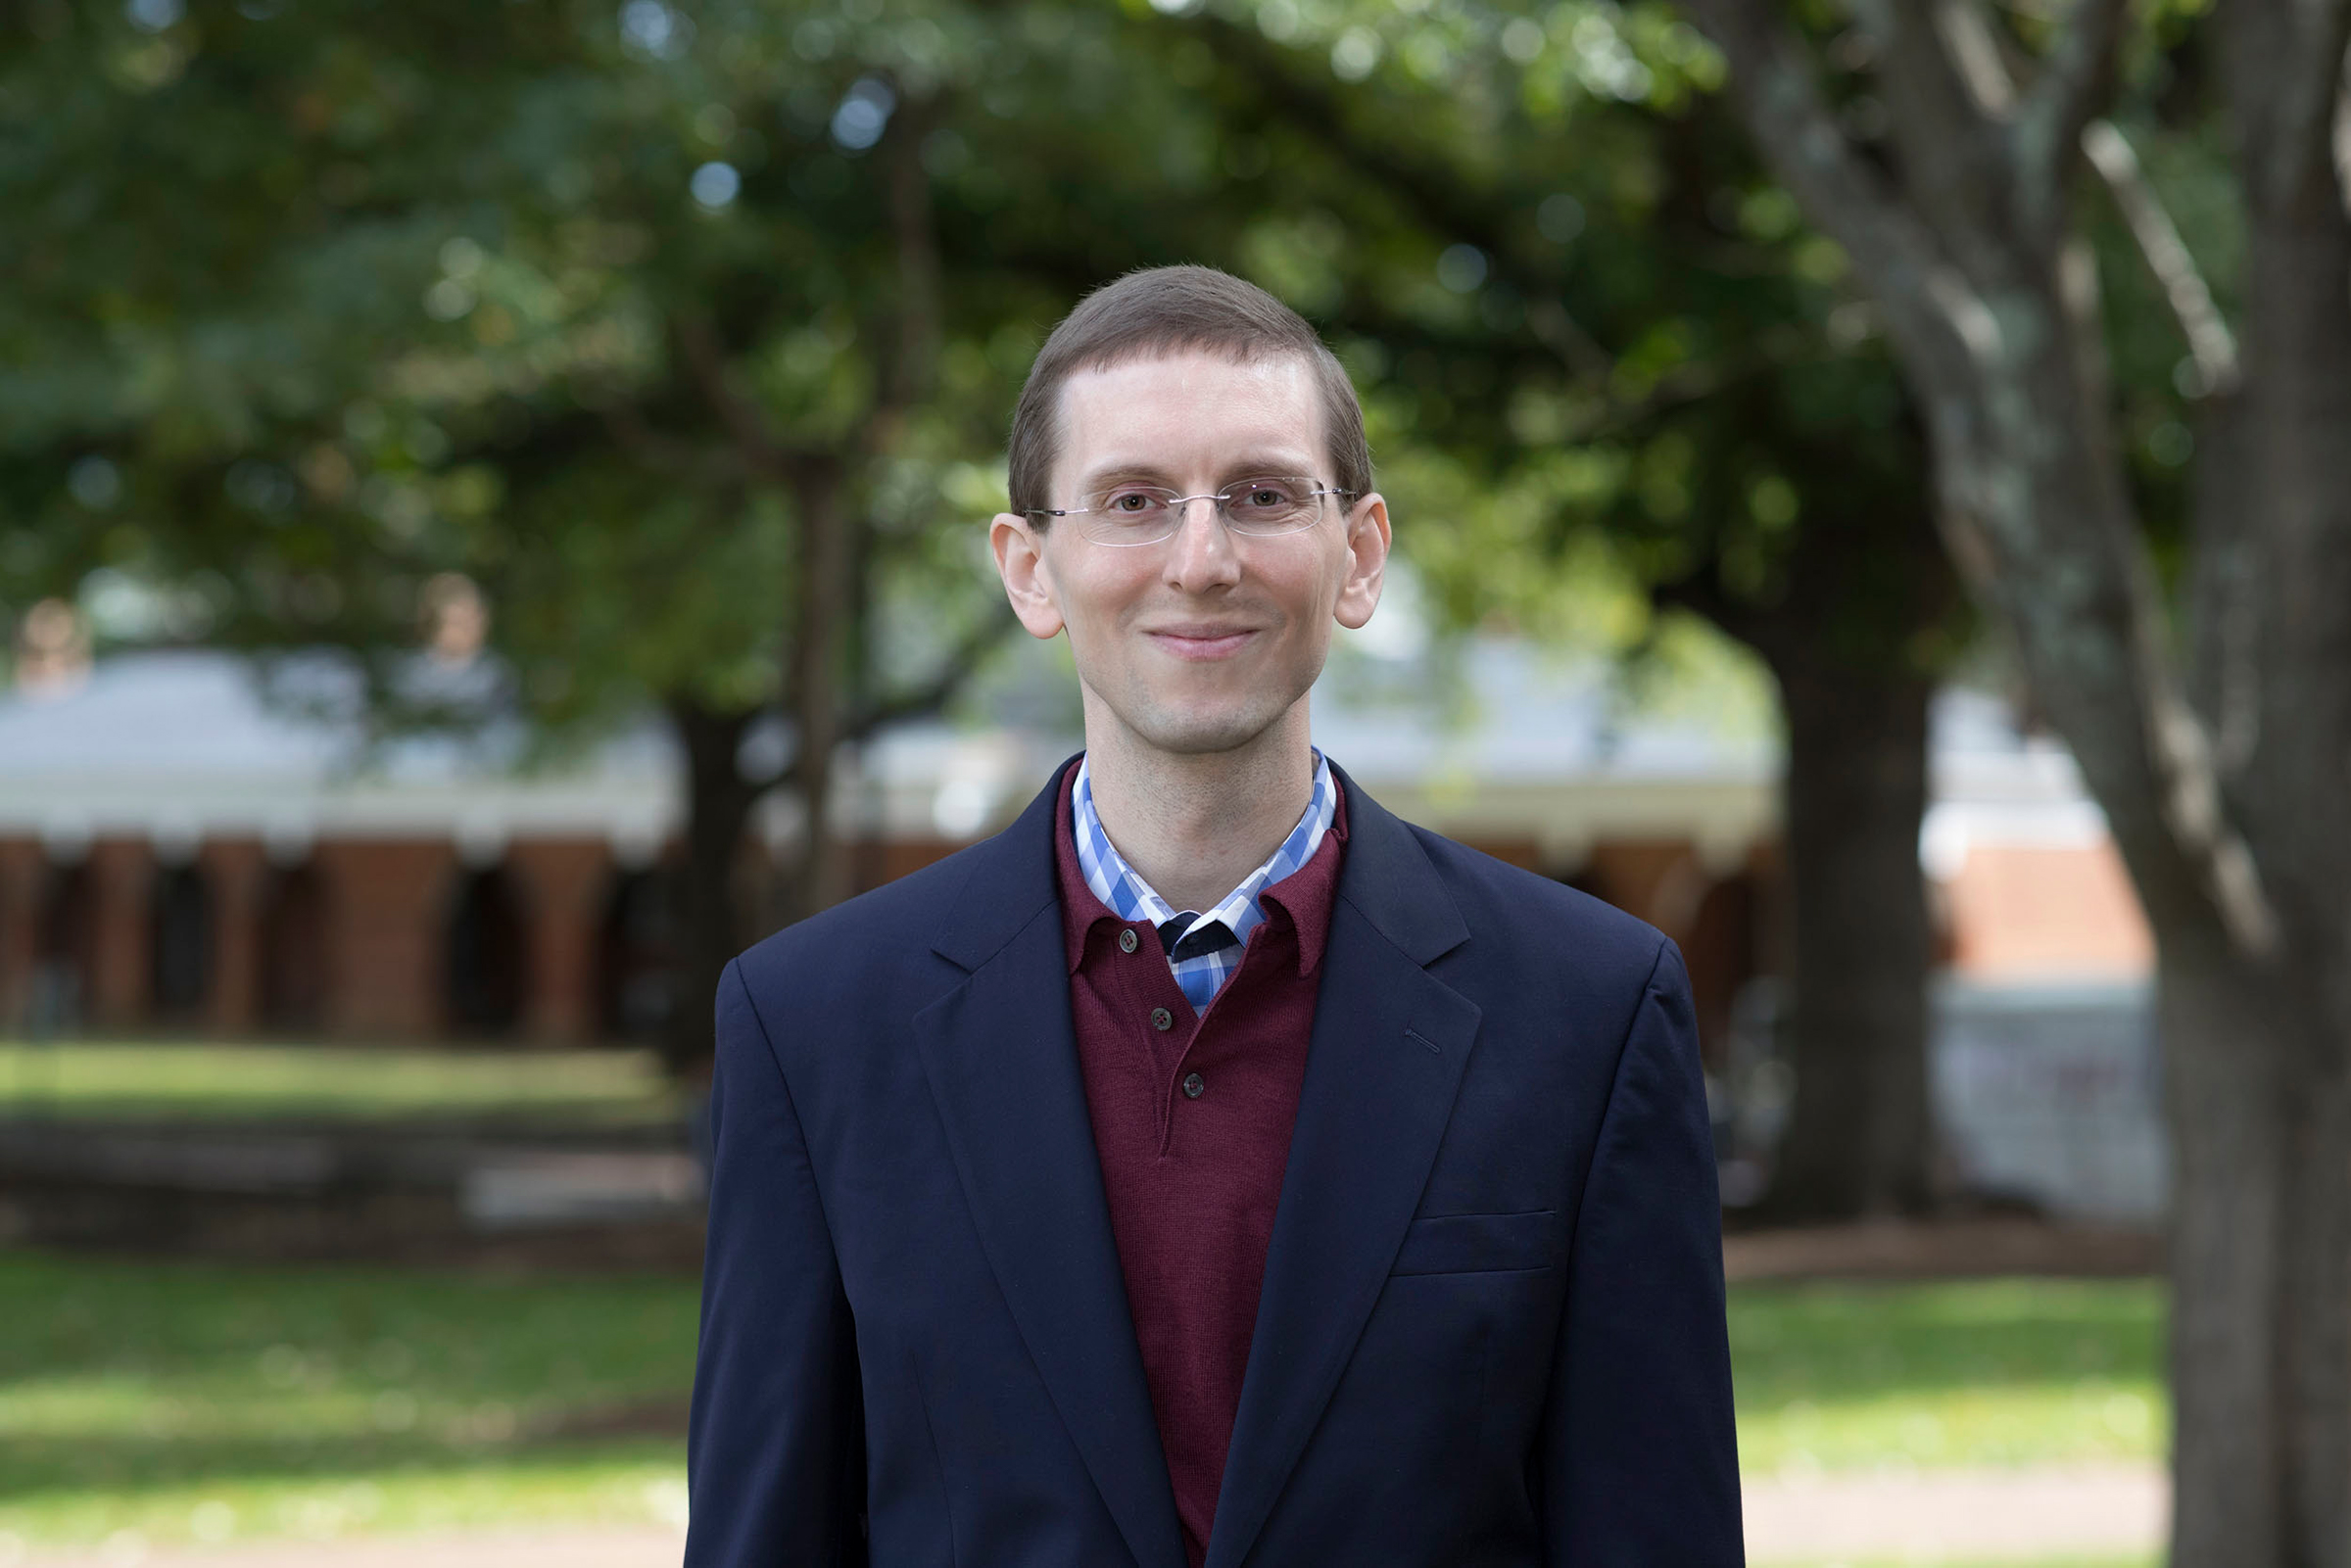 Anton Korinek, who joined UVA's economics faculty this year, hopes to raise awareness around the economic and social impacts of advancing artificial intelligence.